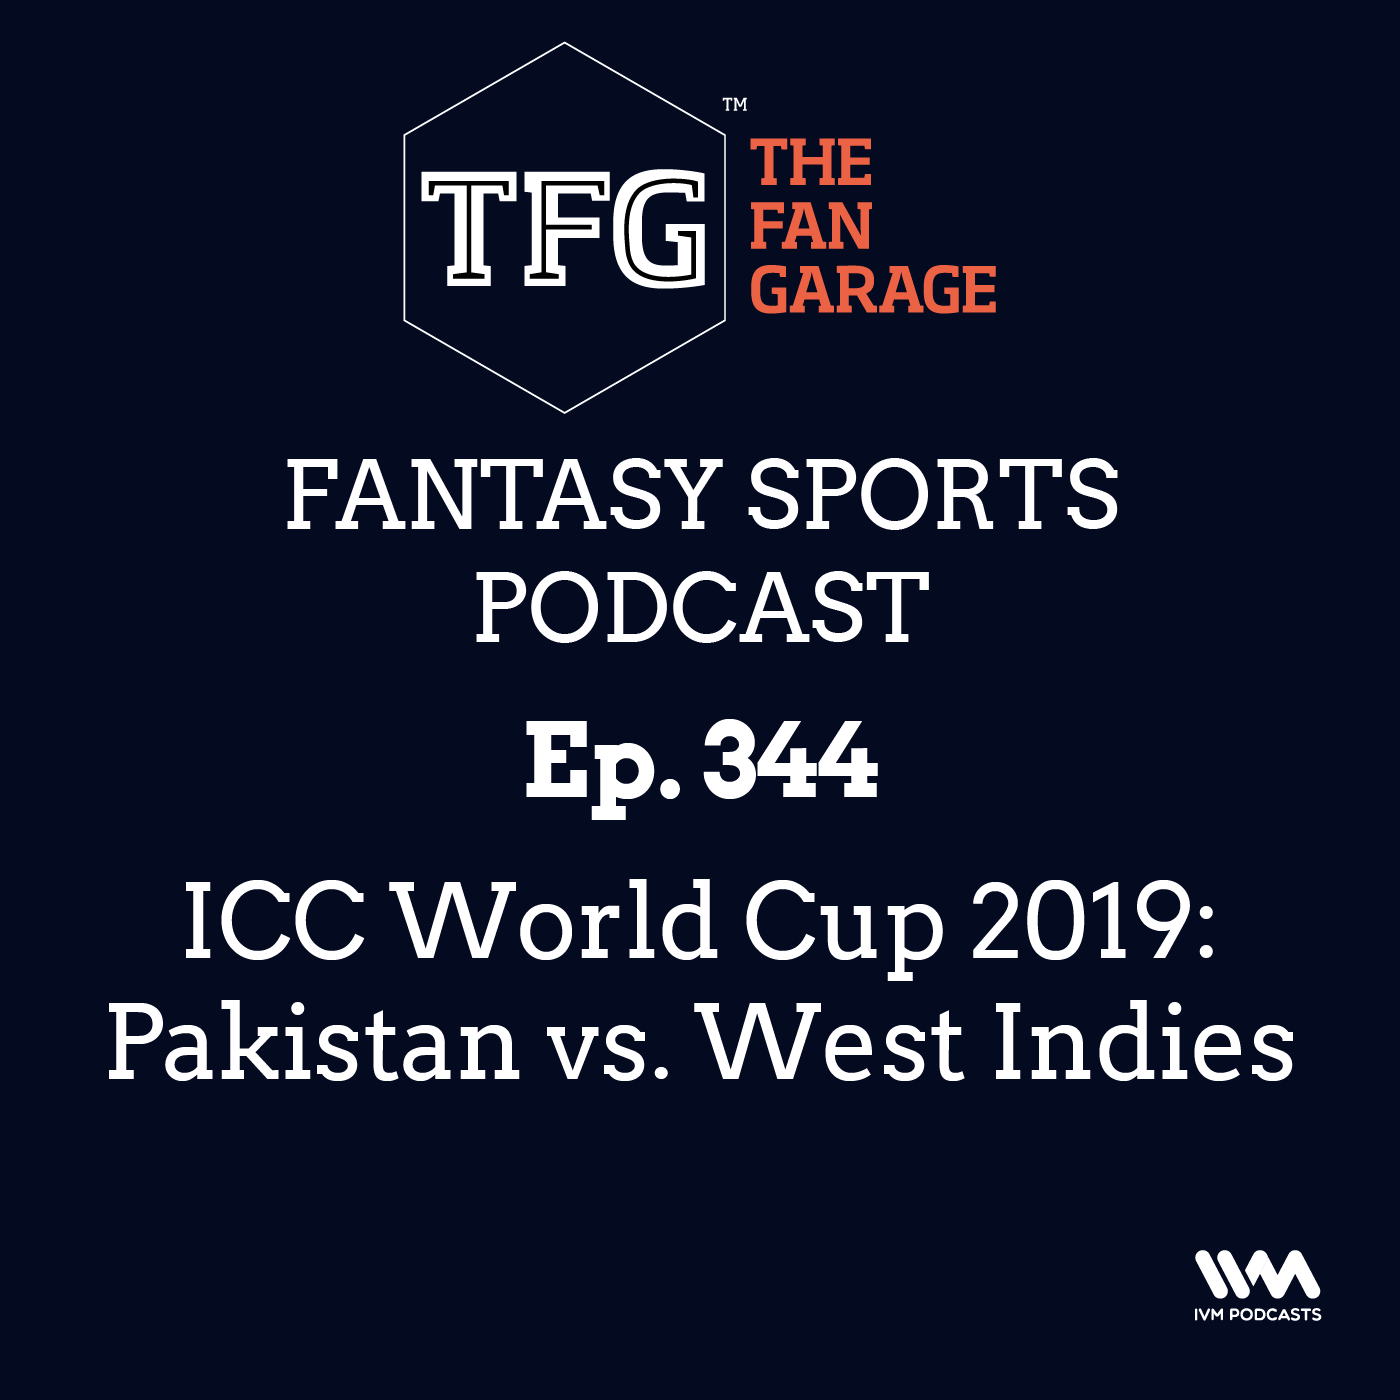 TFG Fantasy Sports Podcast Ep. 344: ICC World Cup 2019: Pakistan vs. West Indies